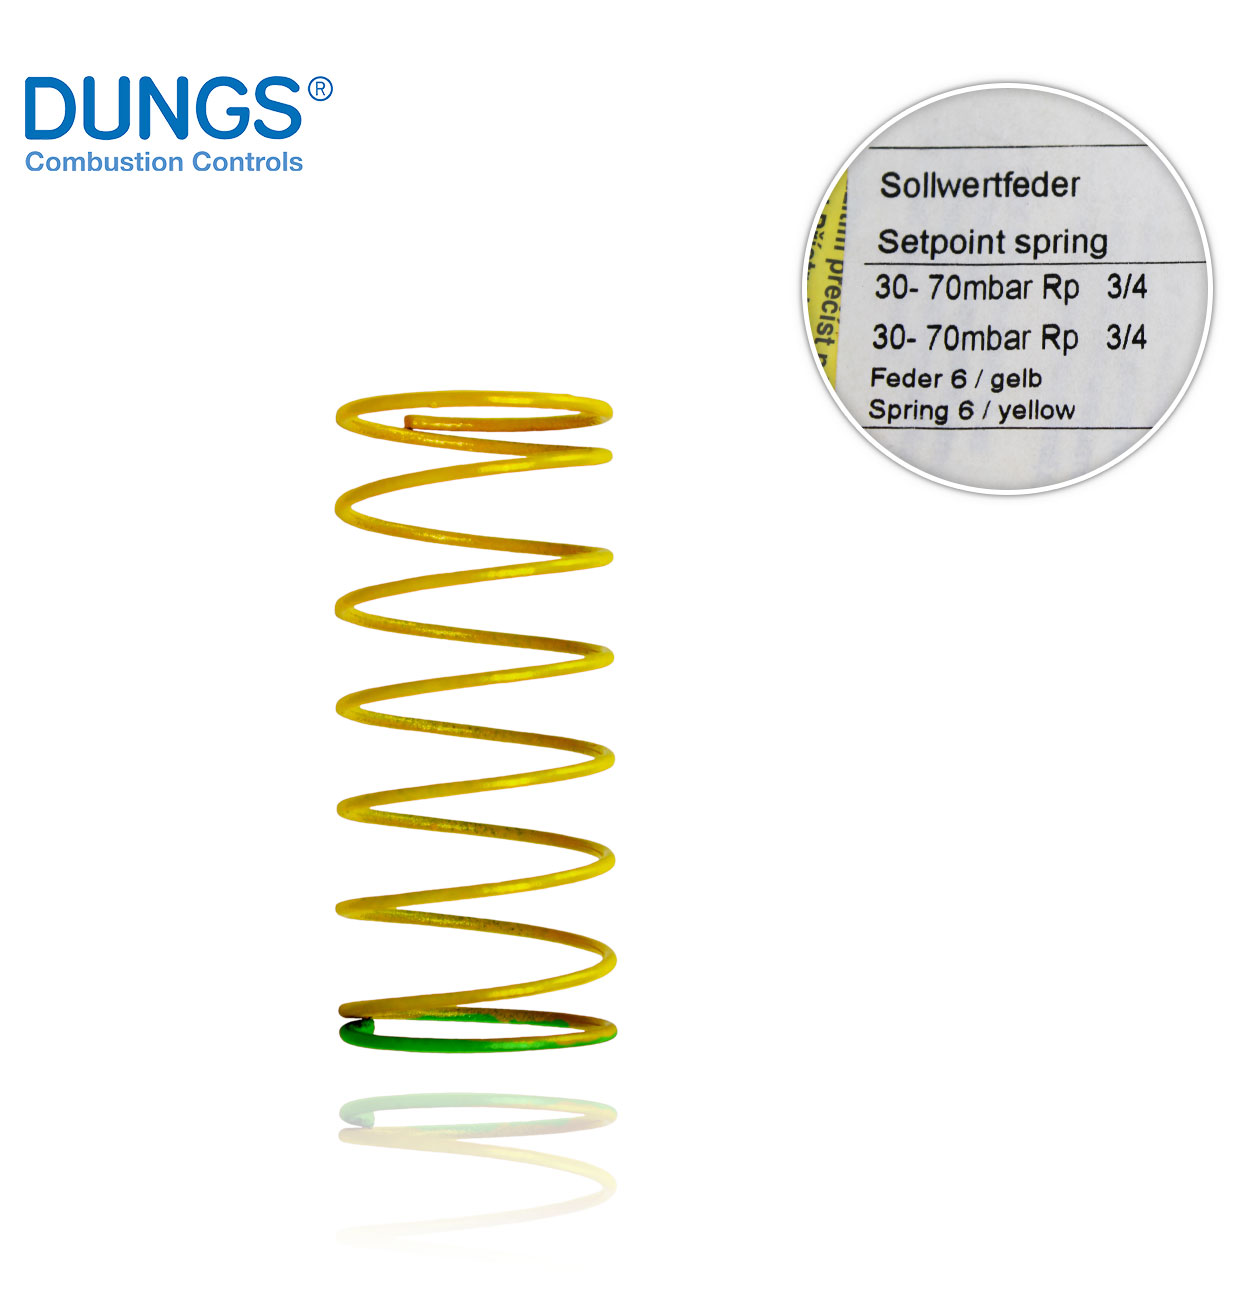 MUELLE AMARILLO 30-70mbar. FRS-FRNG 507 DUNGS 229838